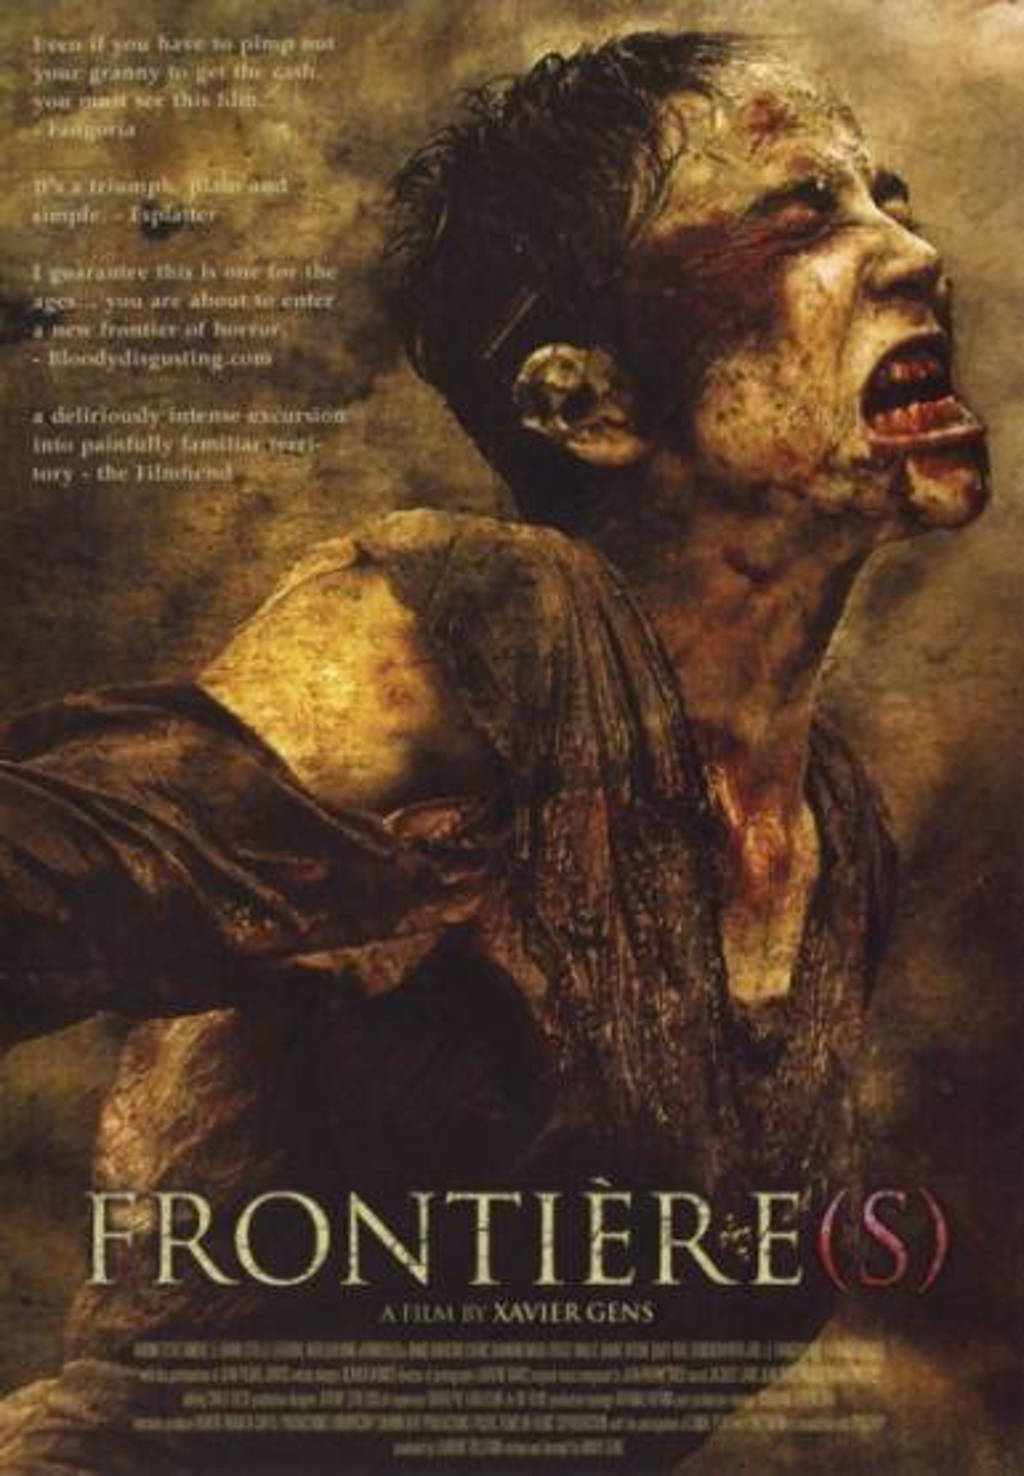 Frontiere(s) (DVD)